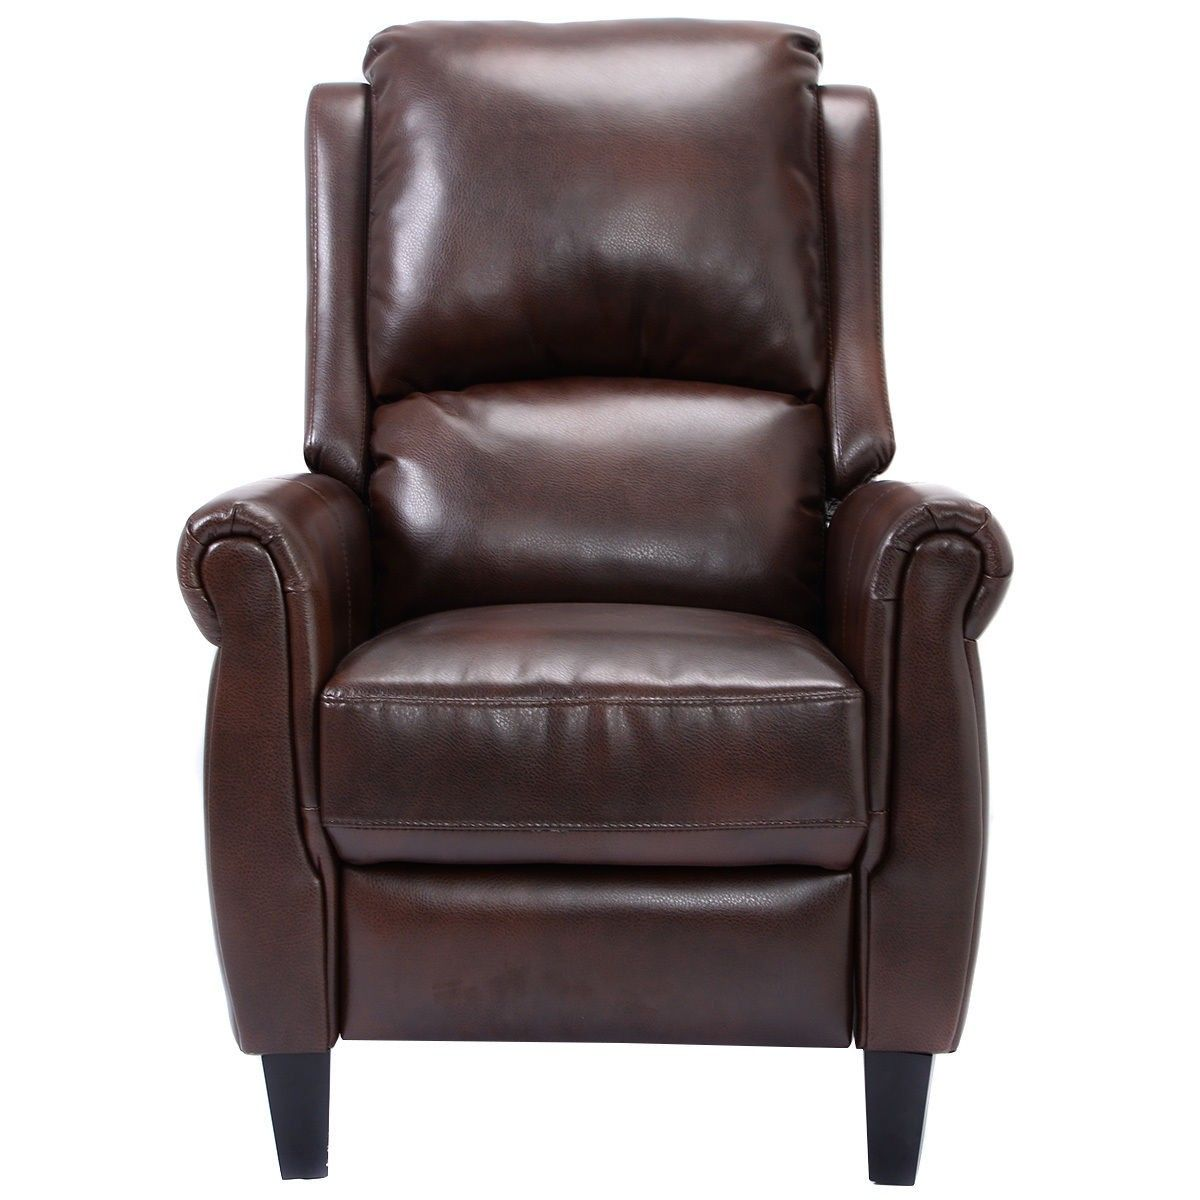 Brown accent chair recliner with leg rest leather